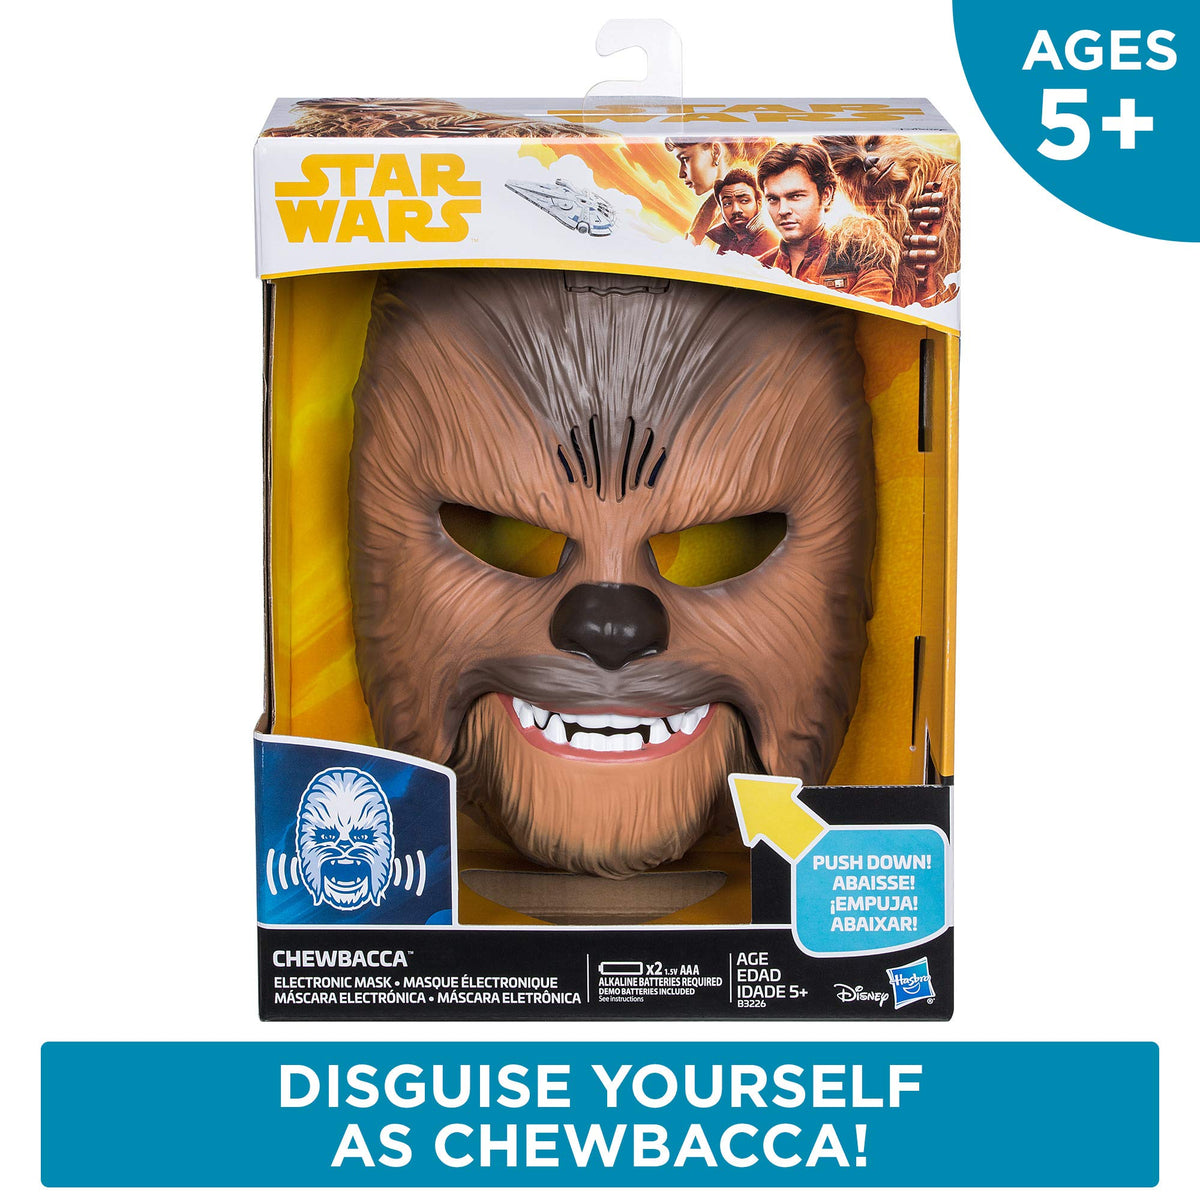 star wars movie roaring chewbacca wookiee sounds mask funny graaaawr white elephant. Black Bedroom Furniture Sets. Home Design Ideas